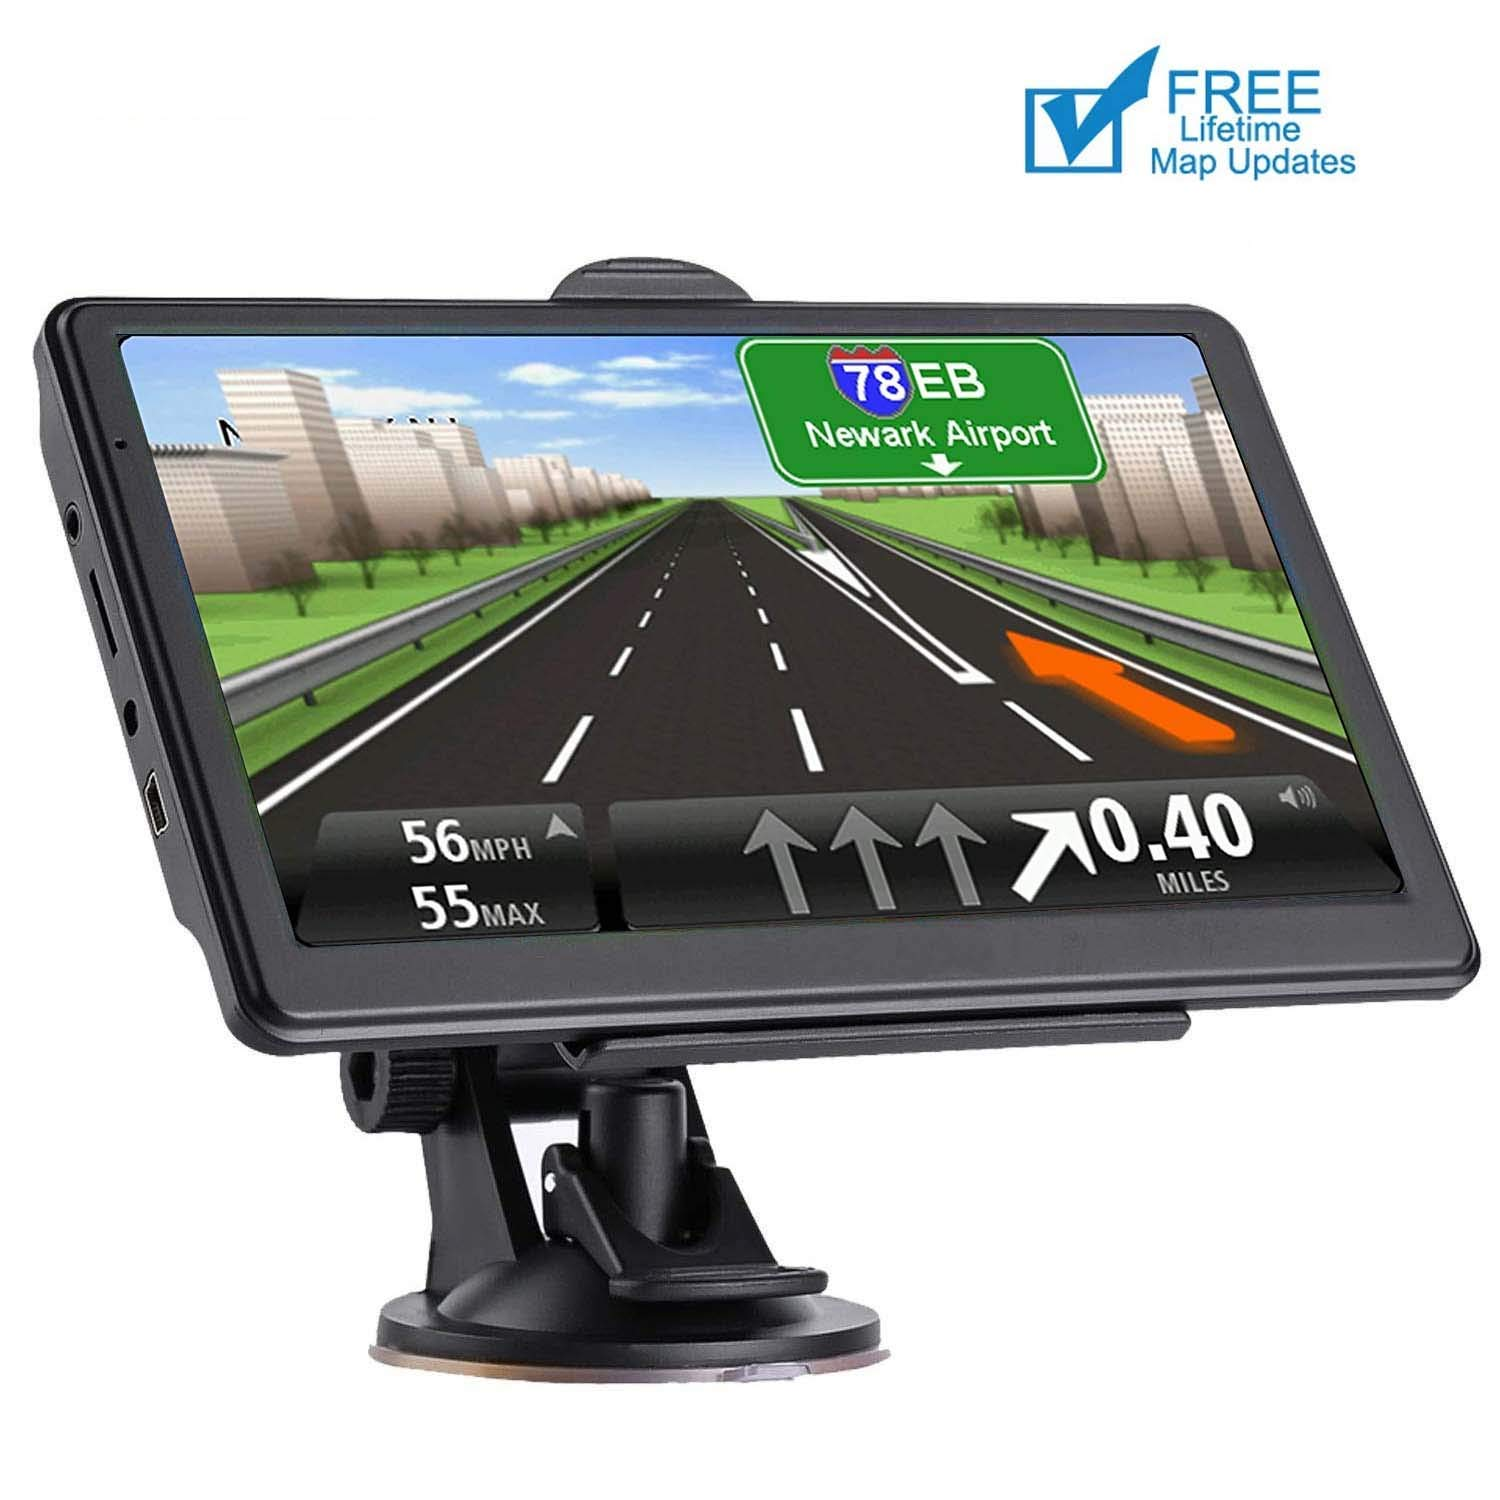 GPS Navigation for car 7 Inch HD Voice Broadcast Frontline Loading North America Map Contains (United States Canada Mexico Map) Lifetime Map Free Update by JANFUN